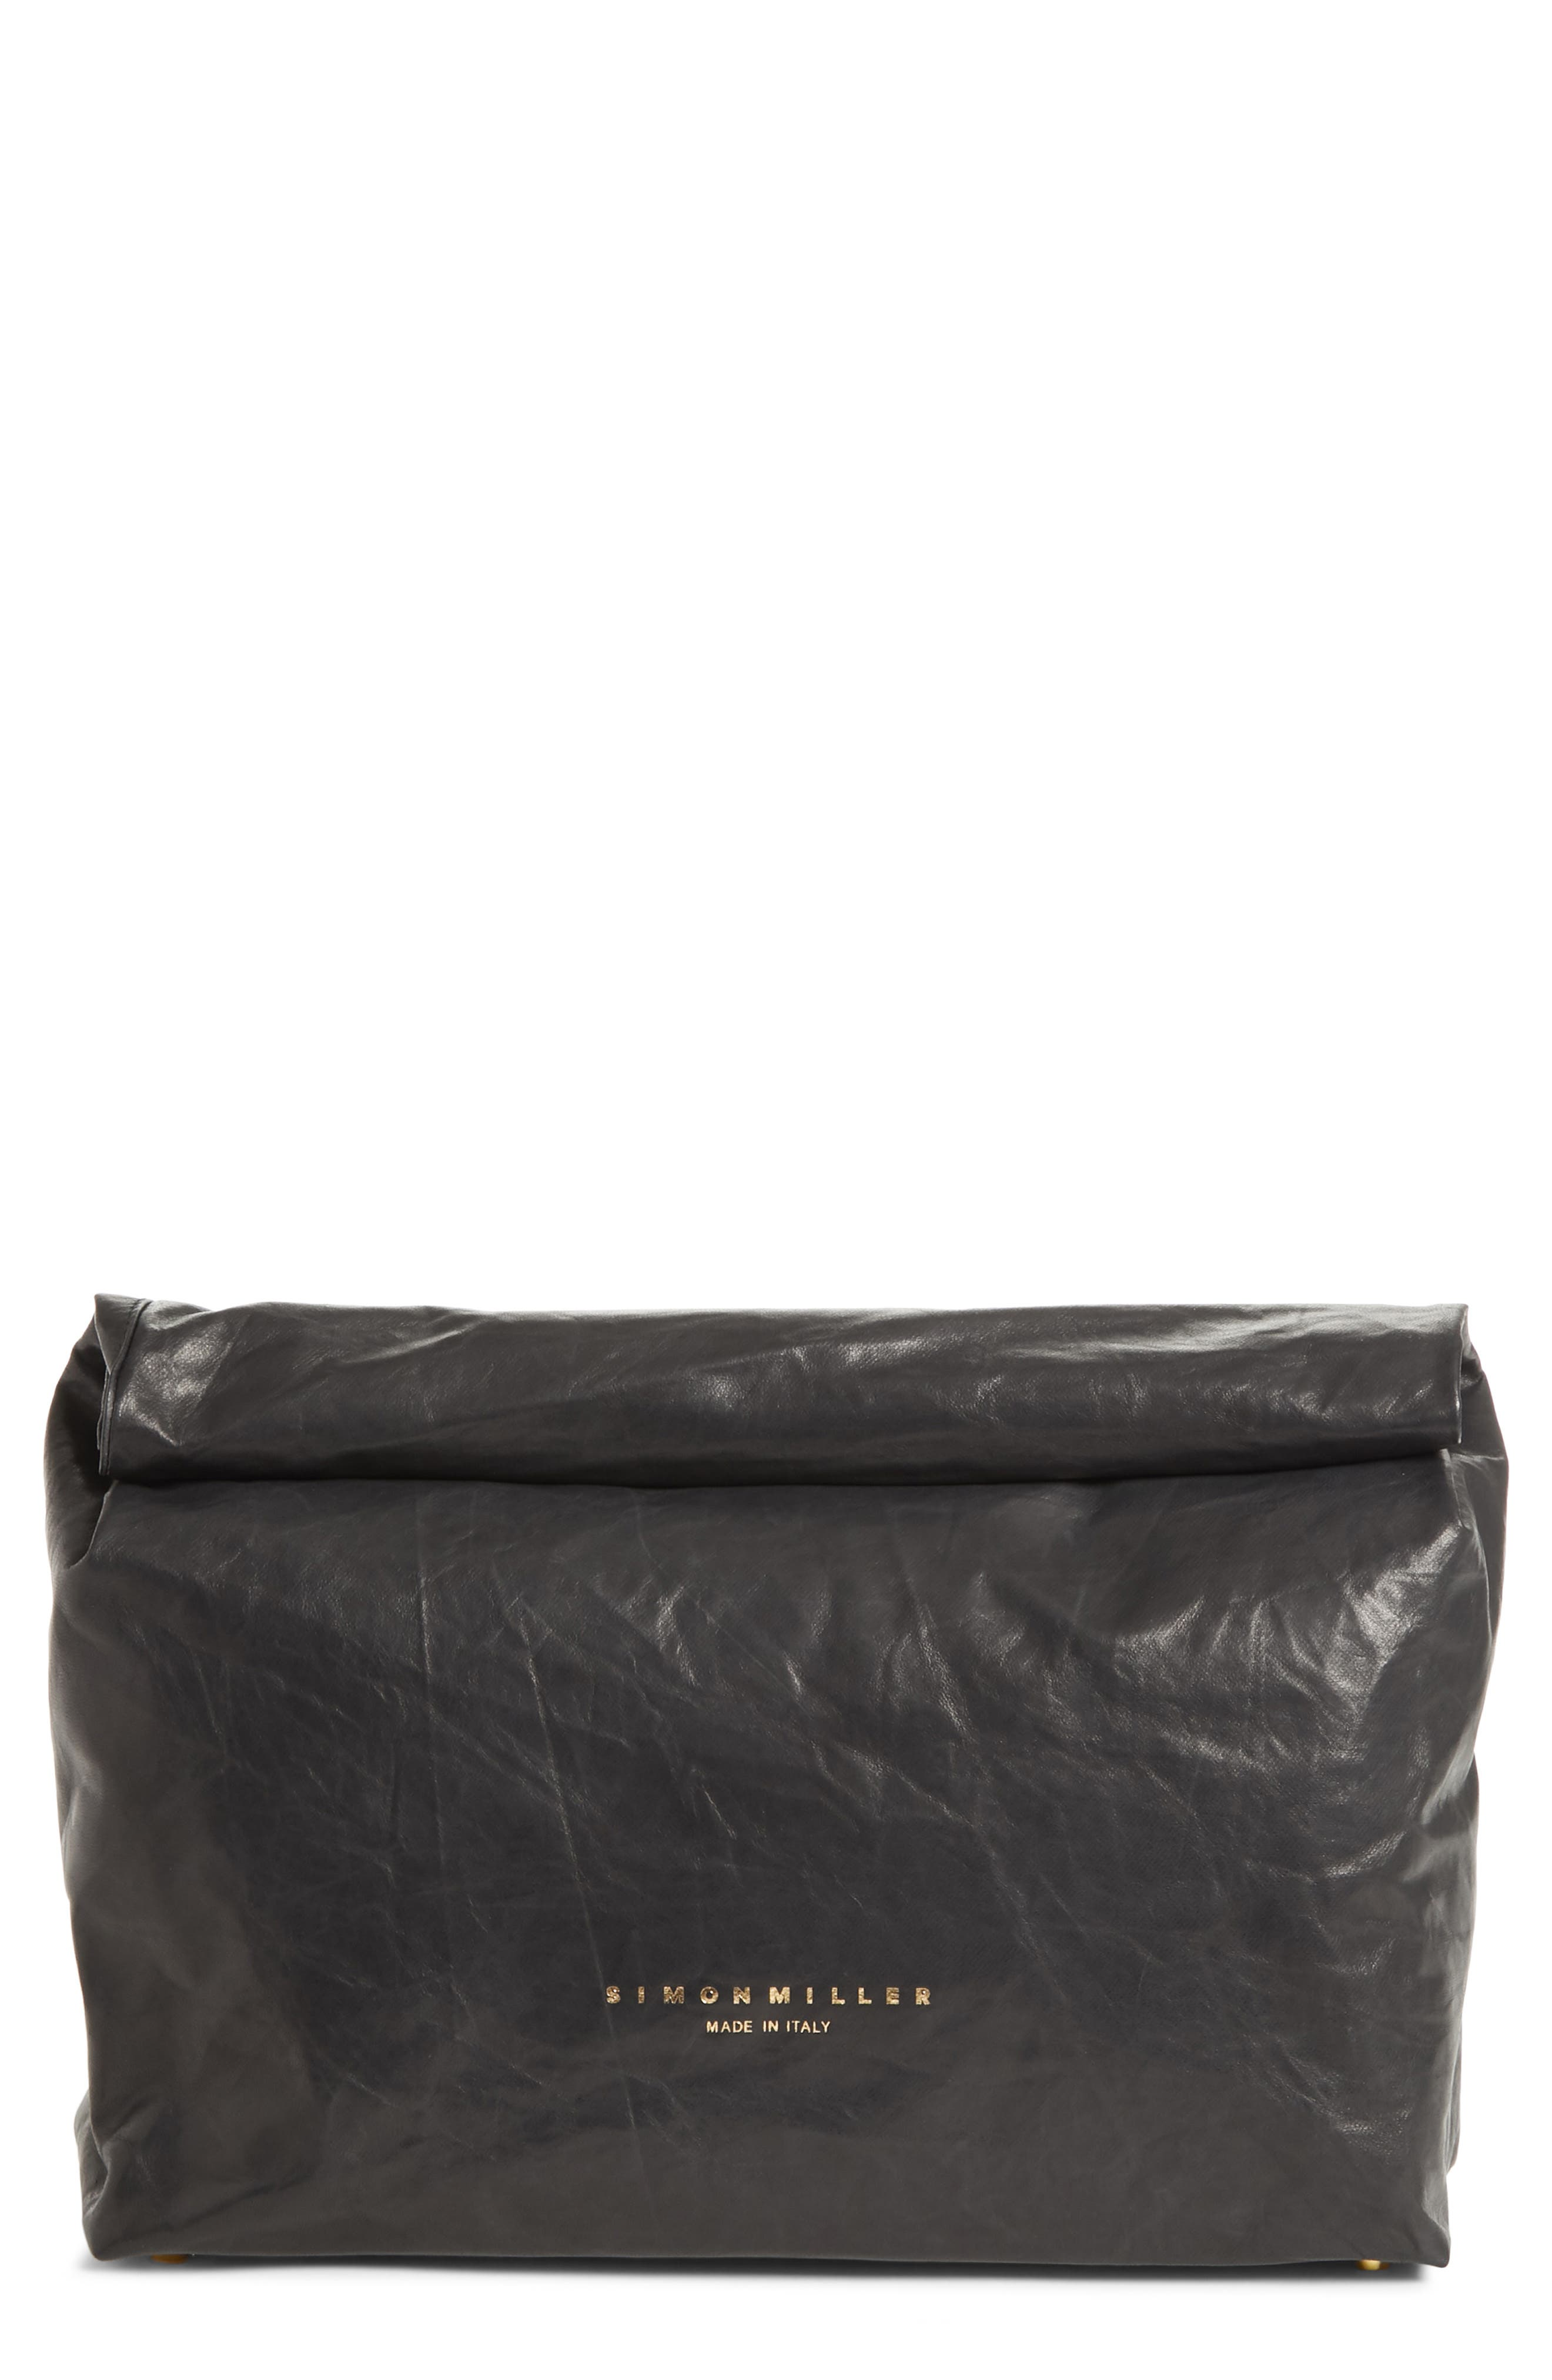 Lunchbag Leather Roll Top Clutch,                         Main,                         color, Black